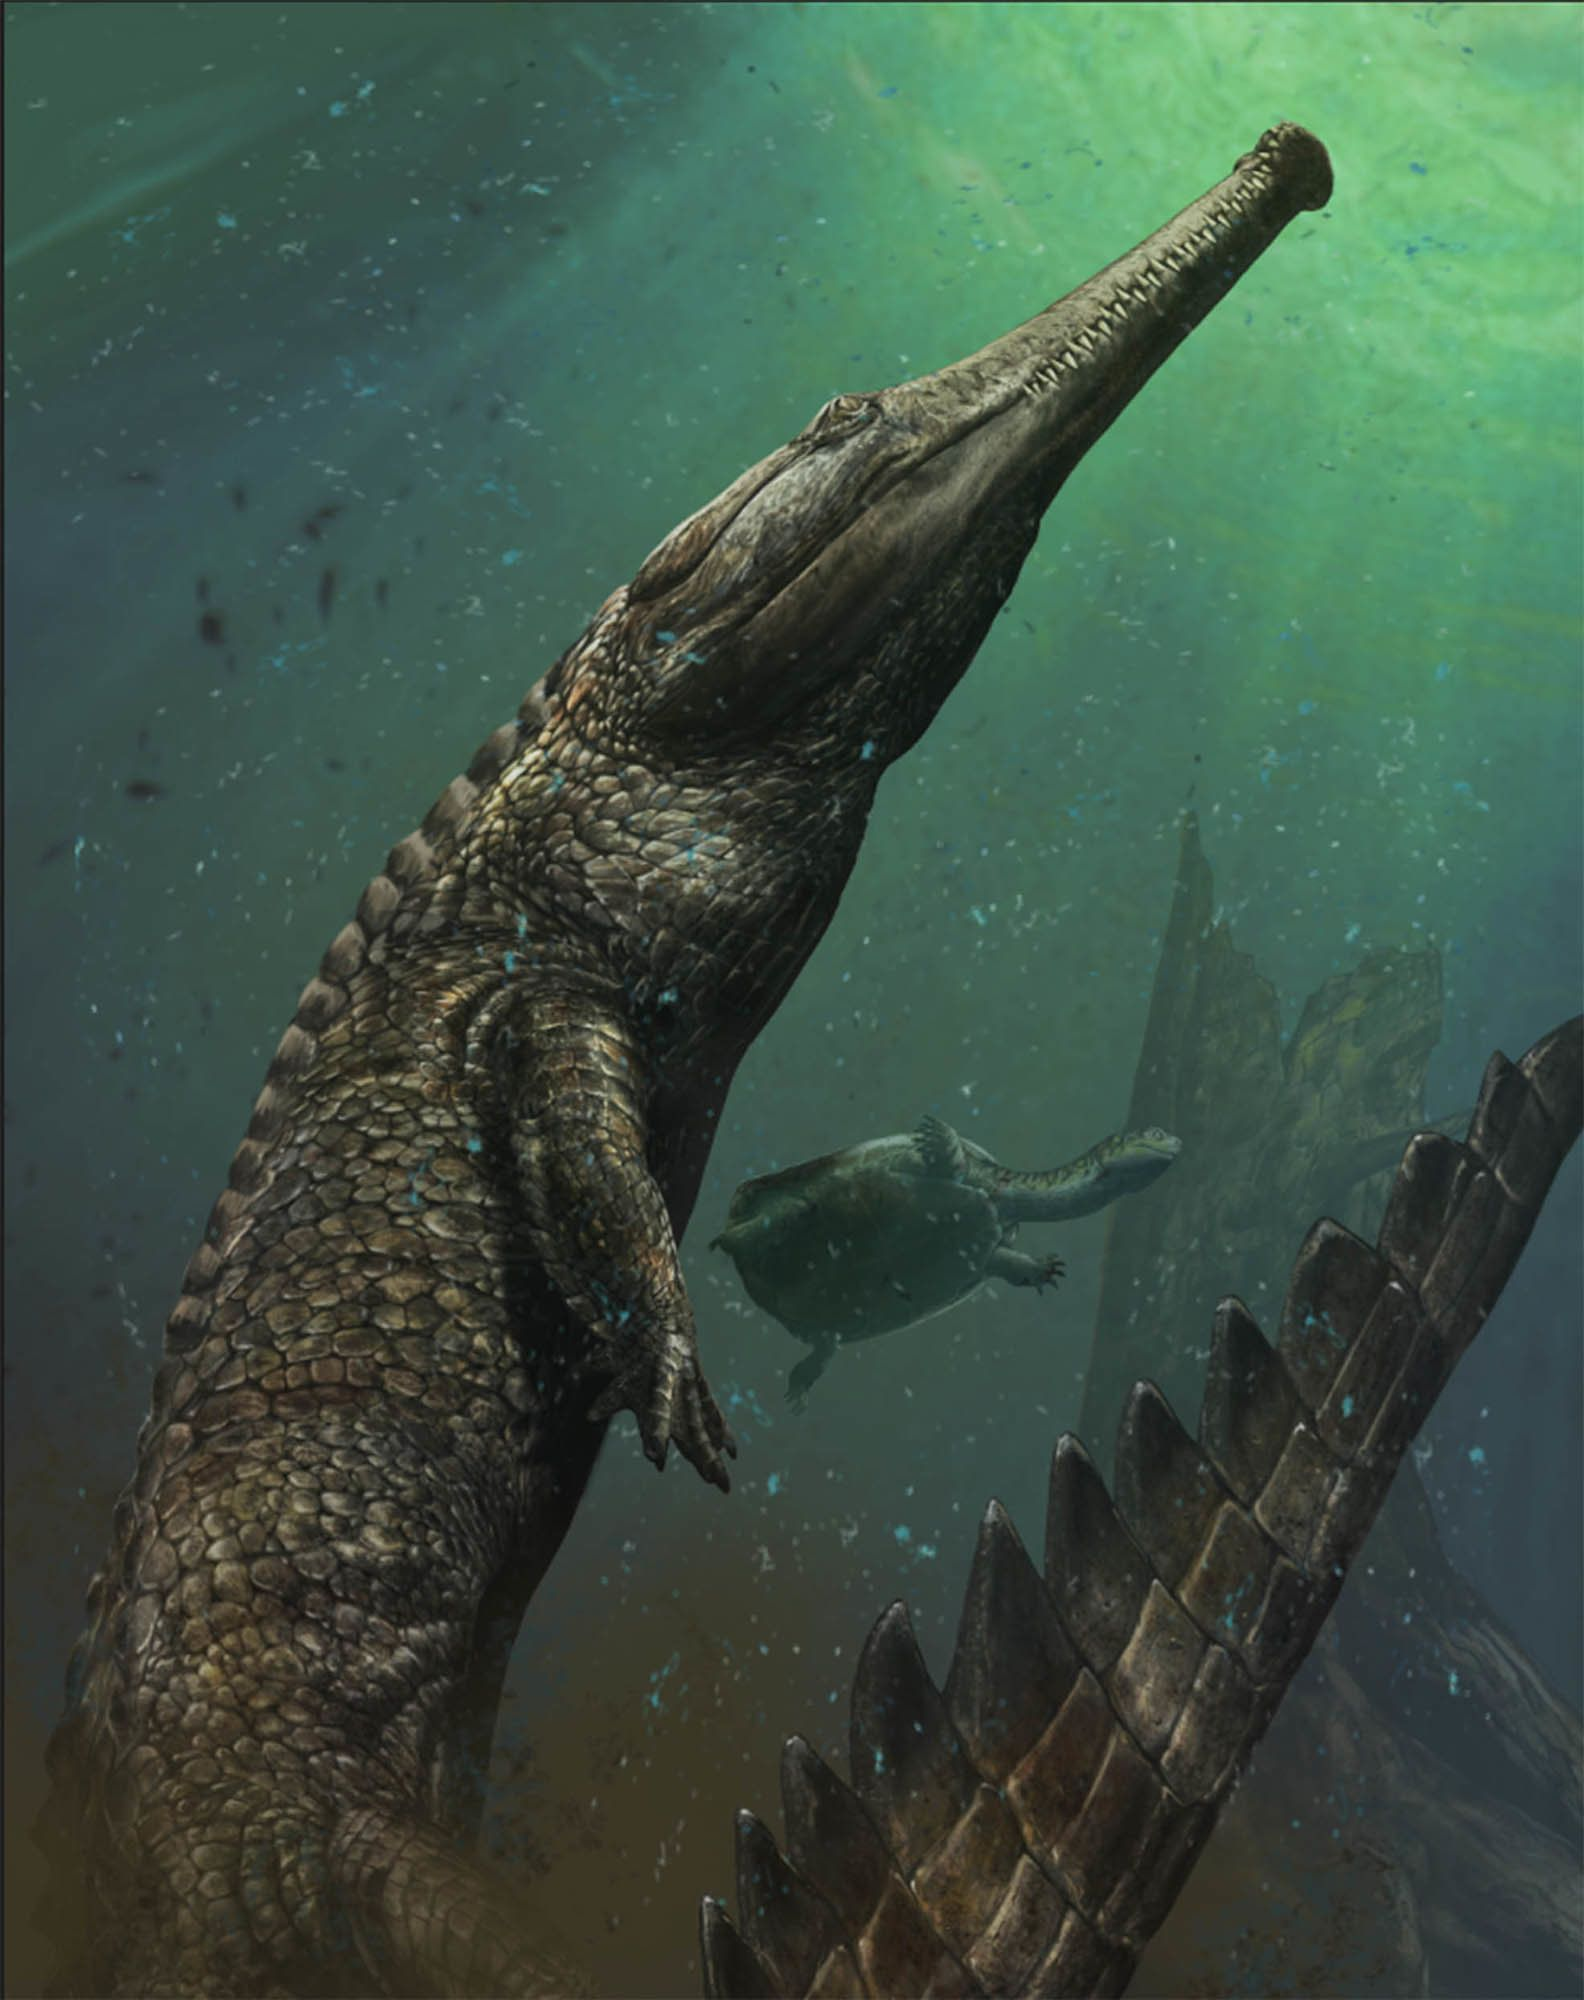 An artist's illustration of Machimosaurus.